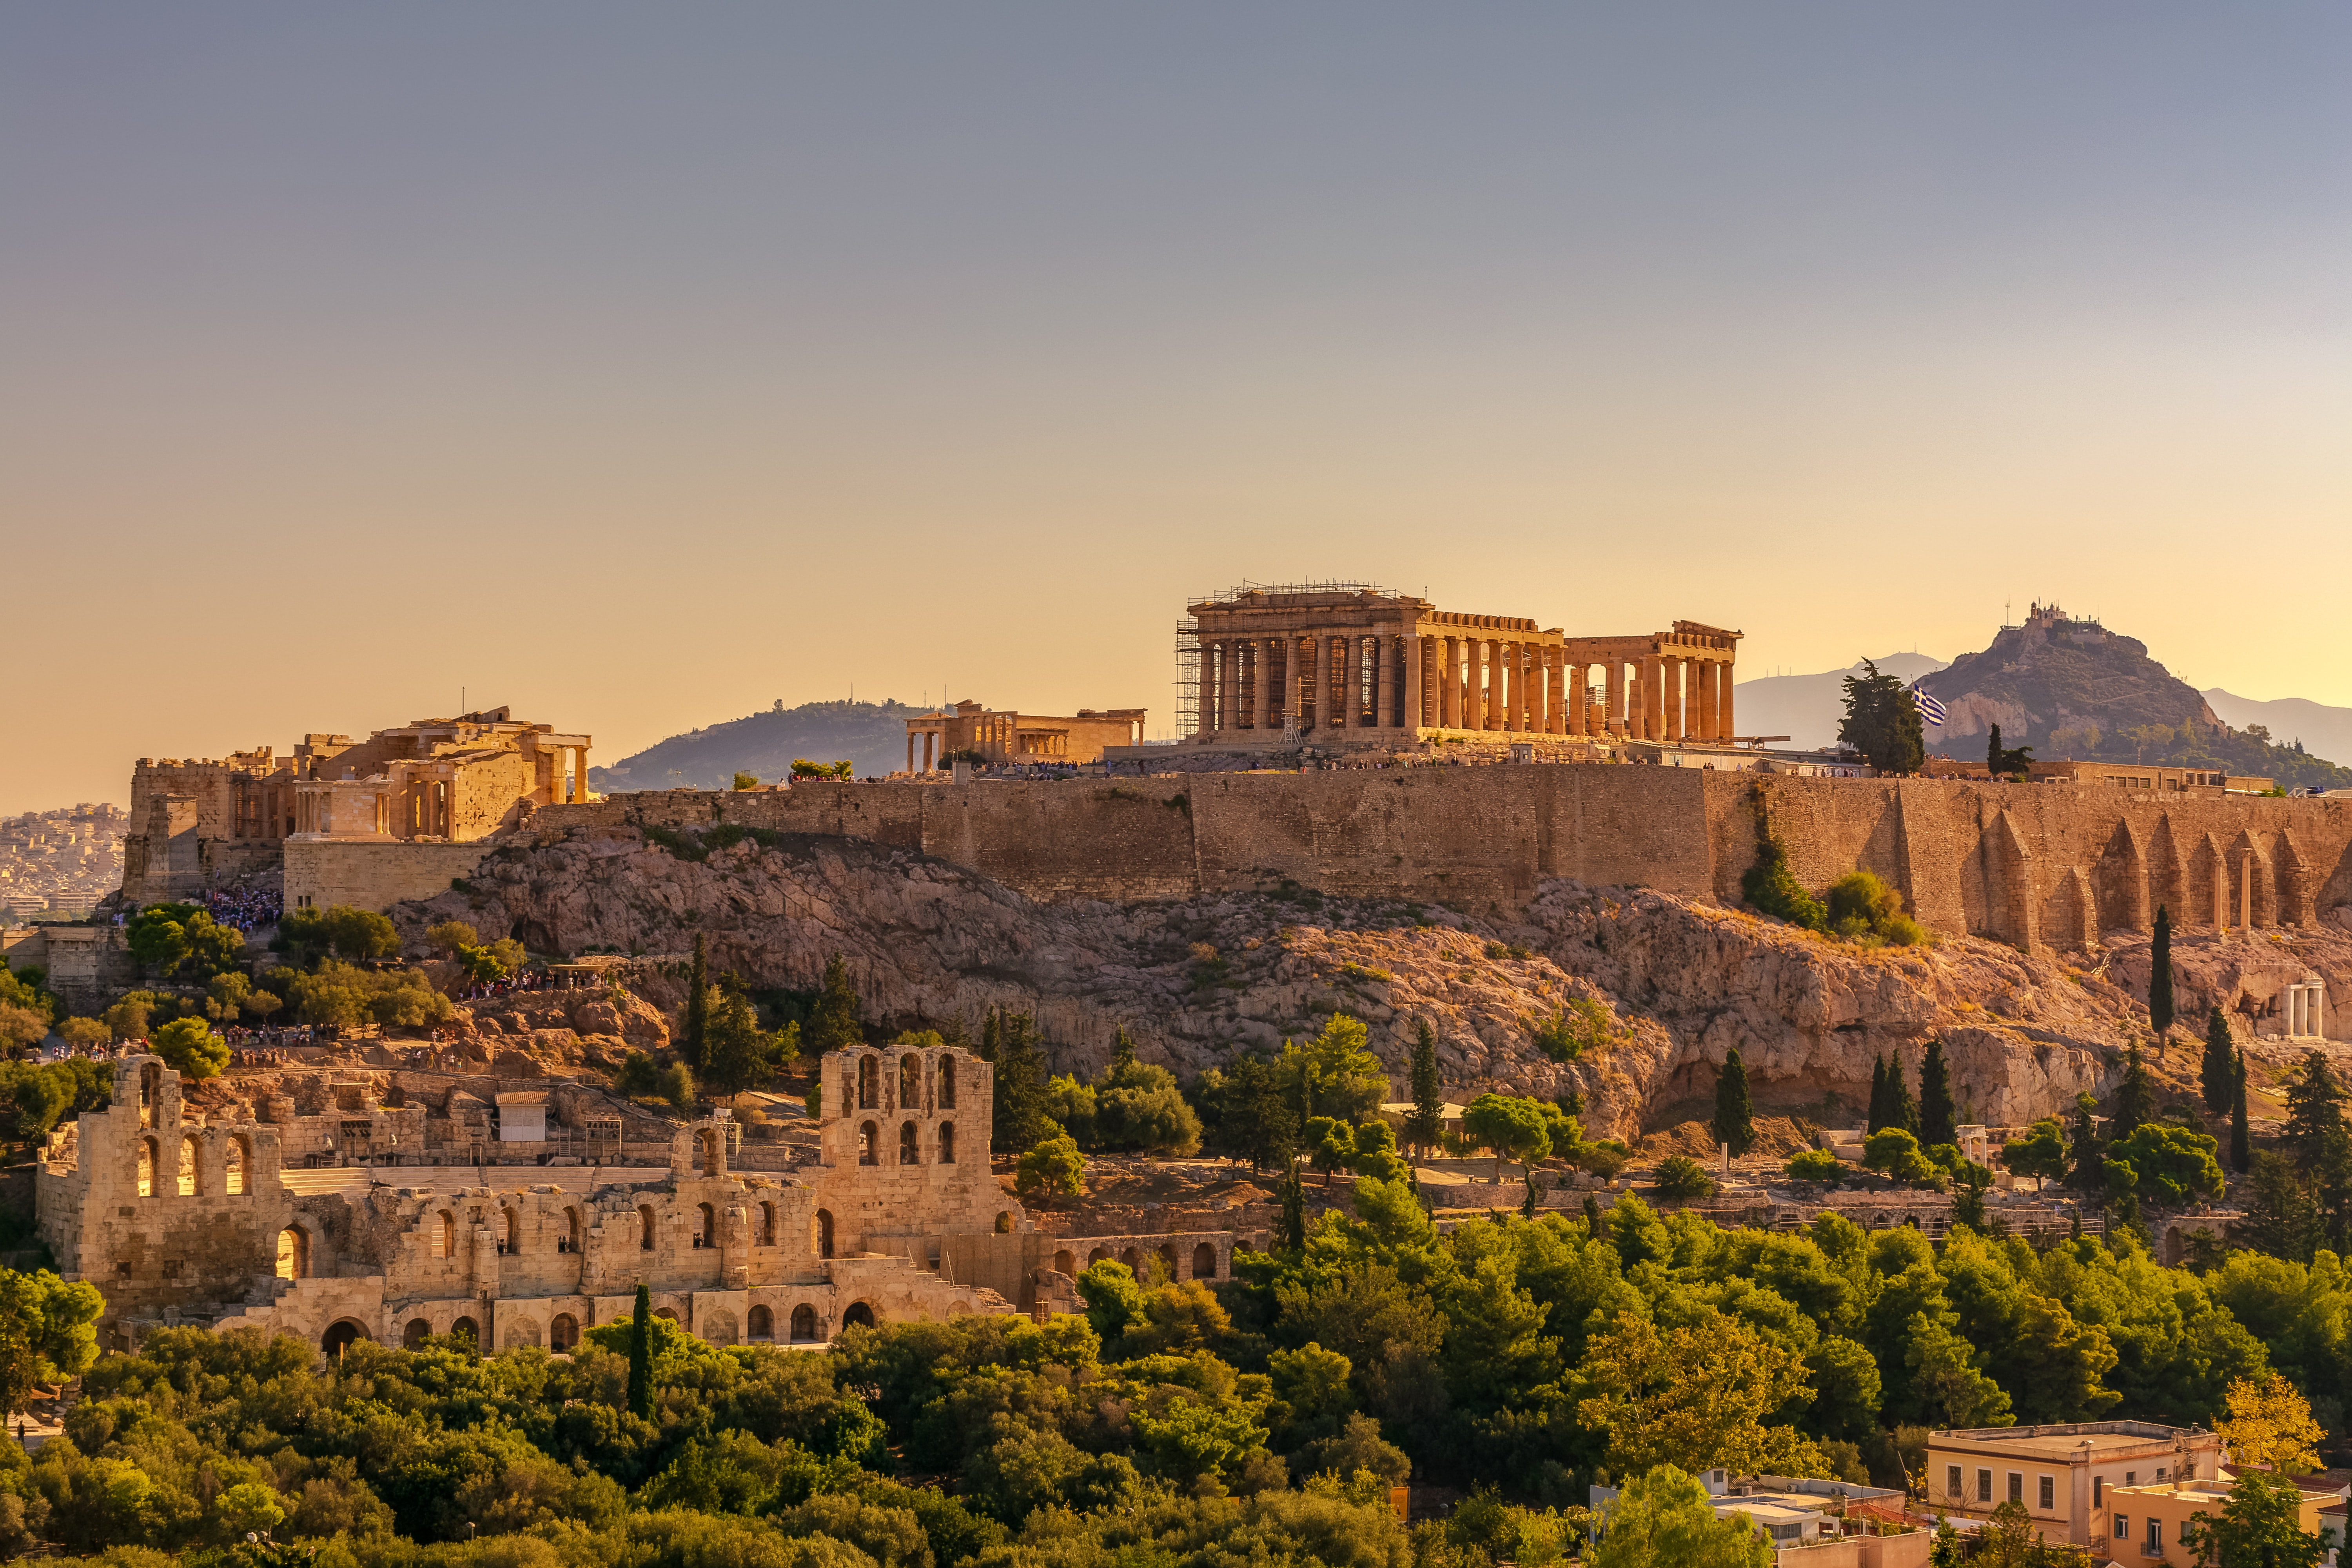 The ancient Acropolis on top of a hill in Athens at sunrise